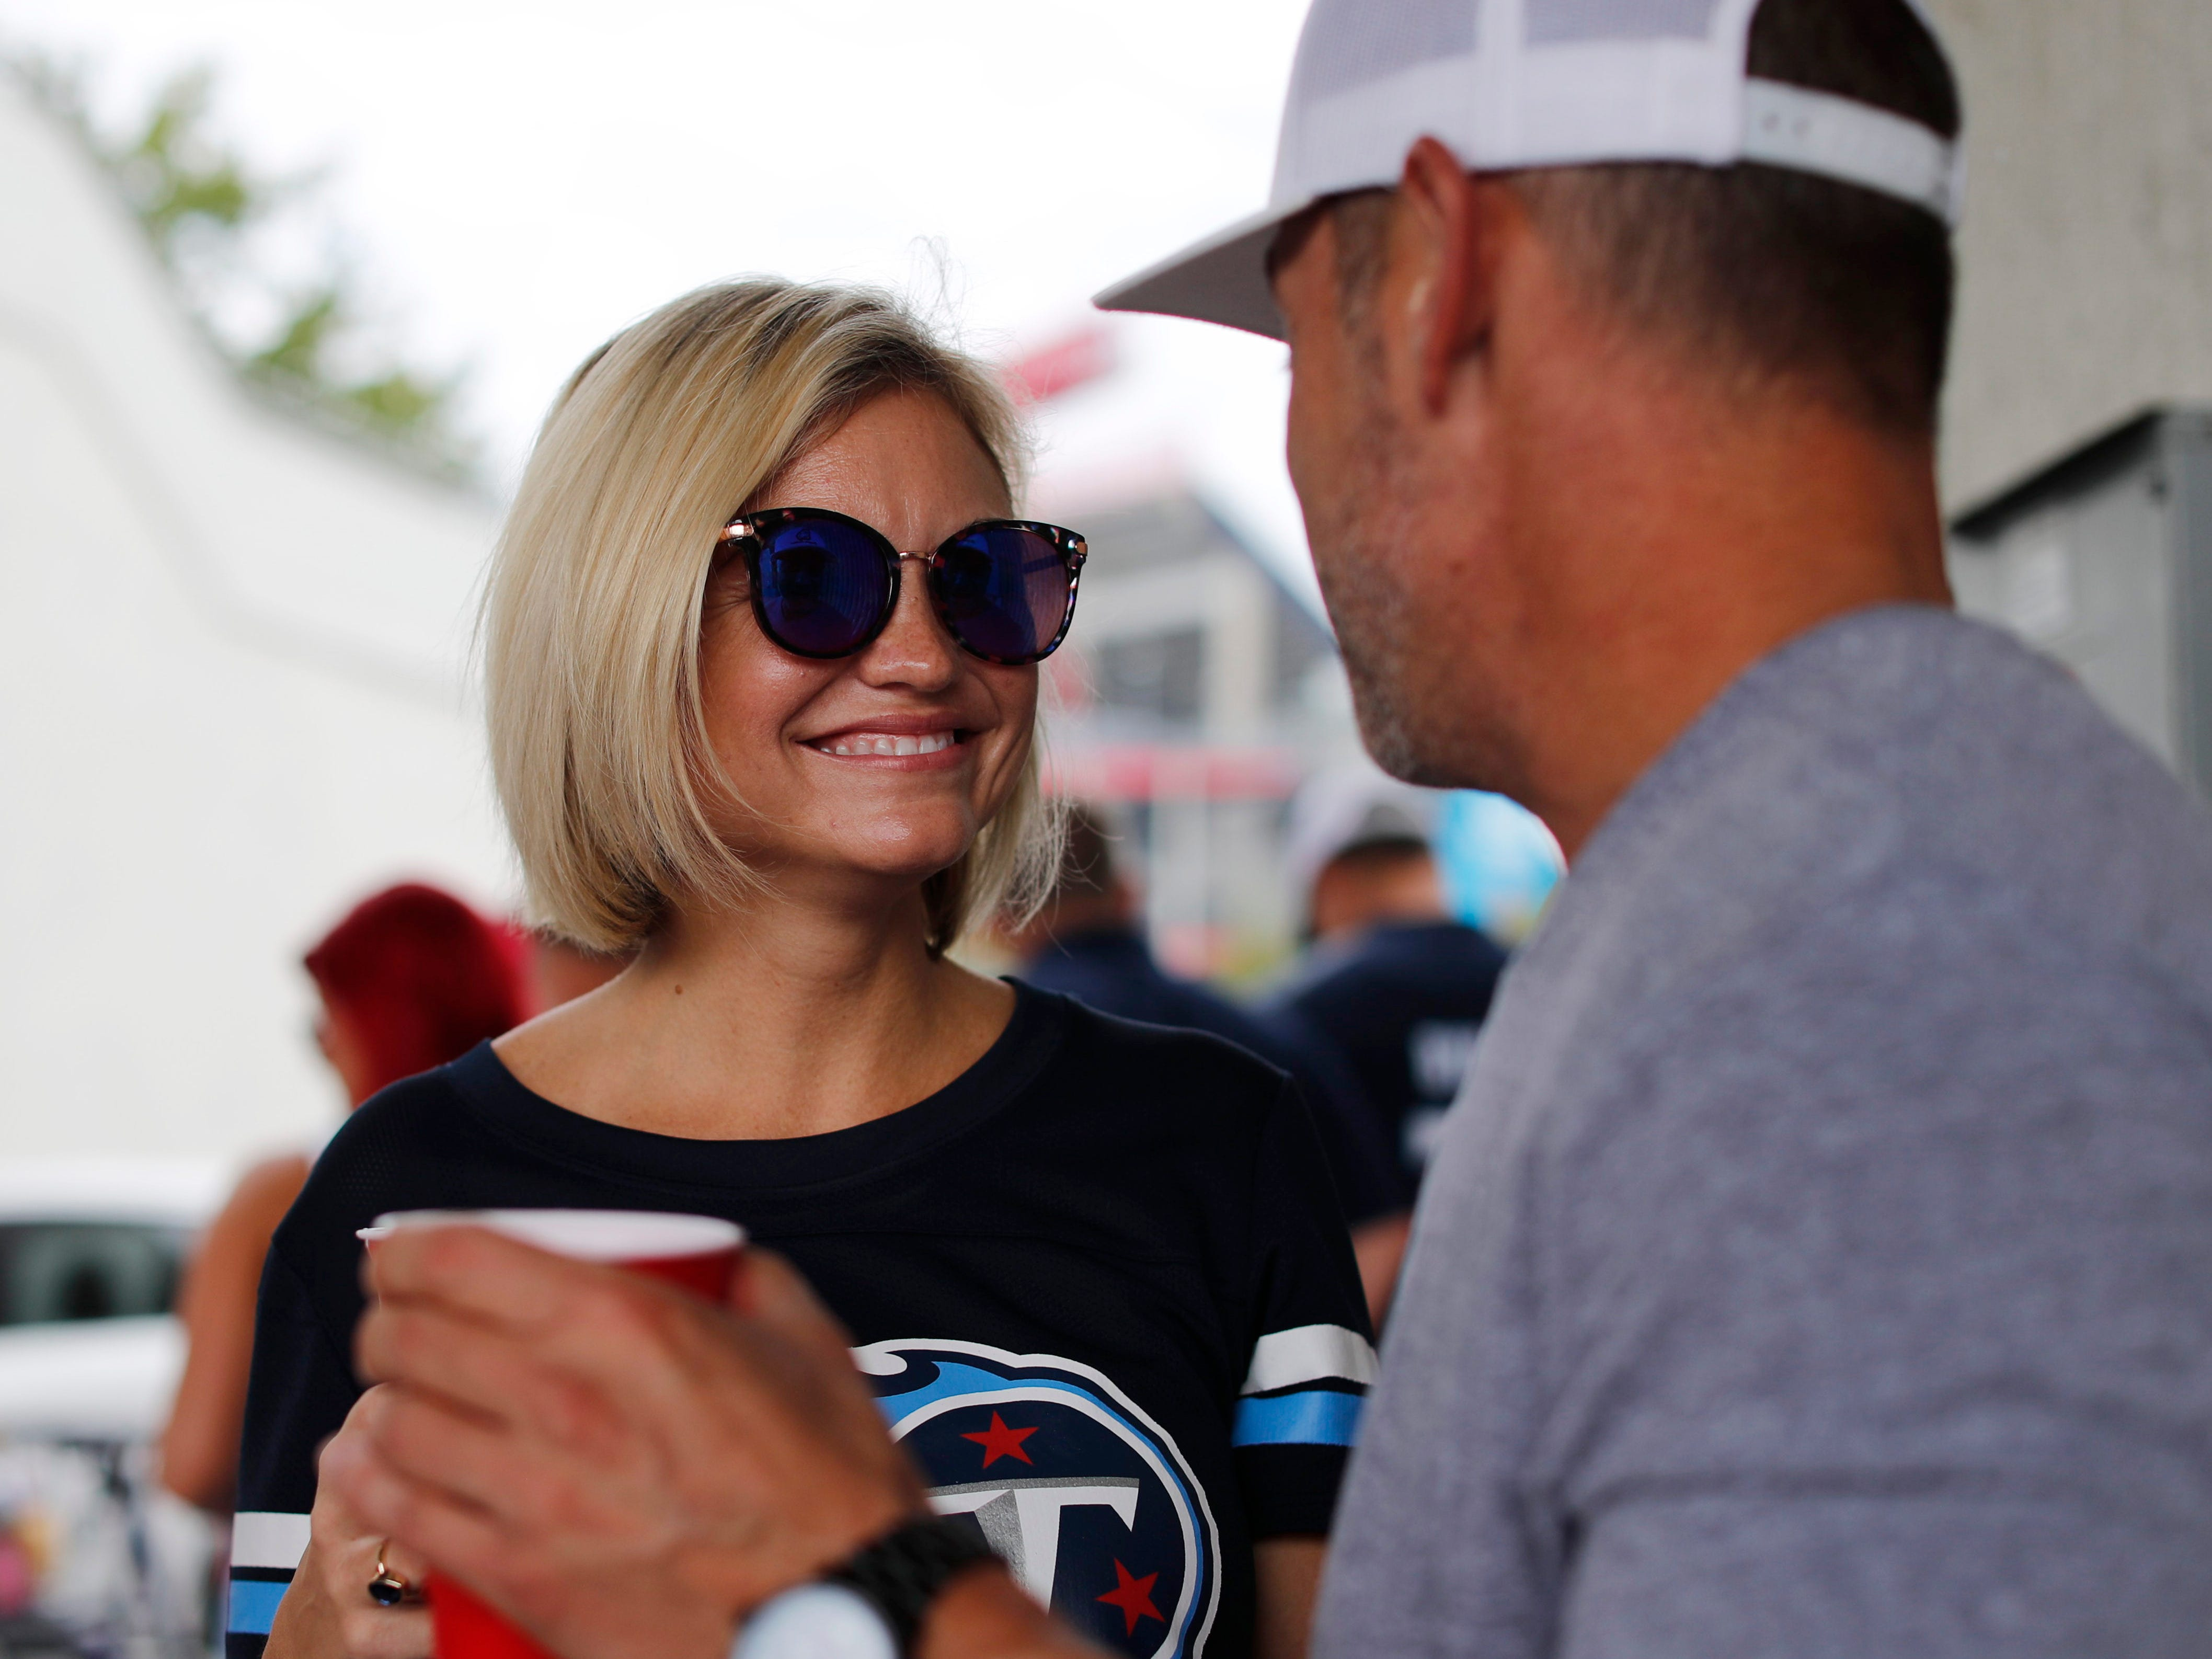 Angela McAndrew and William Morstad tailgate before the Titans' game against the Texans at Nissan Stadium Sunday, Sept. 16, 2018, in Nashville, Tenn.